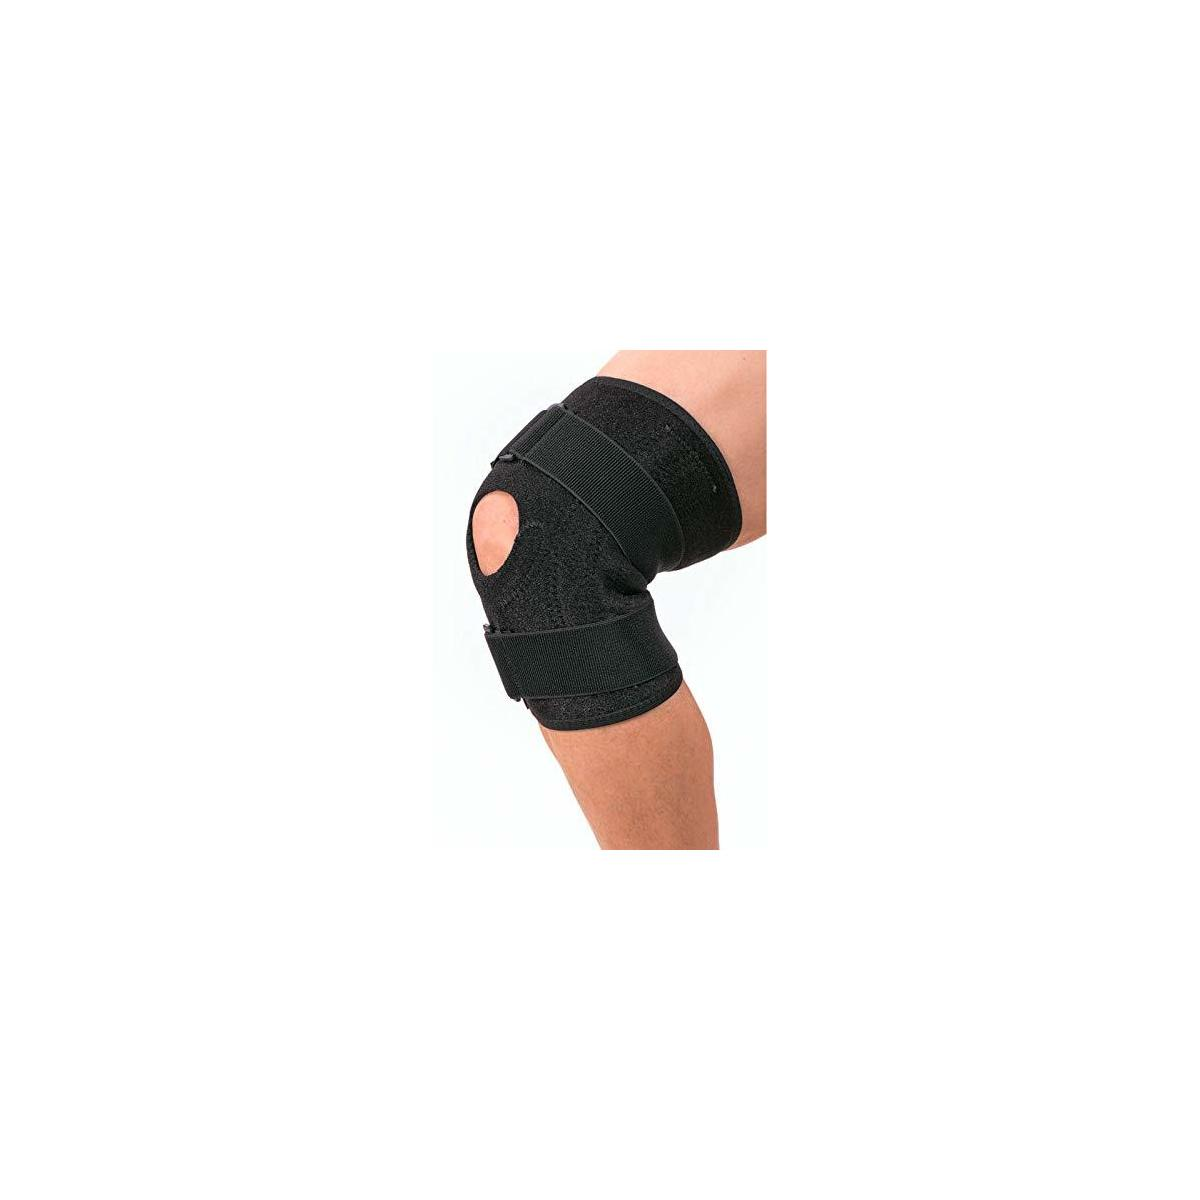 Royal Signet Open Patellar Knee Brace for Arthritis Pain and Support. Adjustable Knee Support Post Surgery, Fluid and Swelling Knee Protector and Stabilizer. Knee Braces for Women Plus Size, and Men